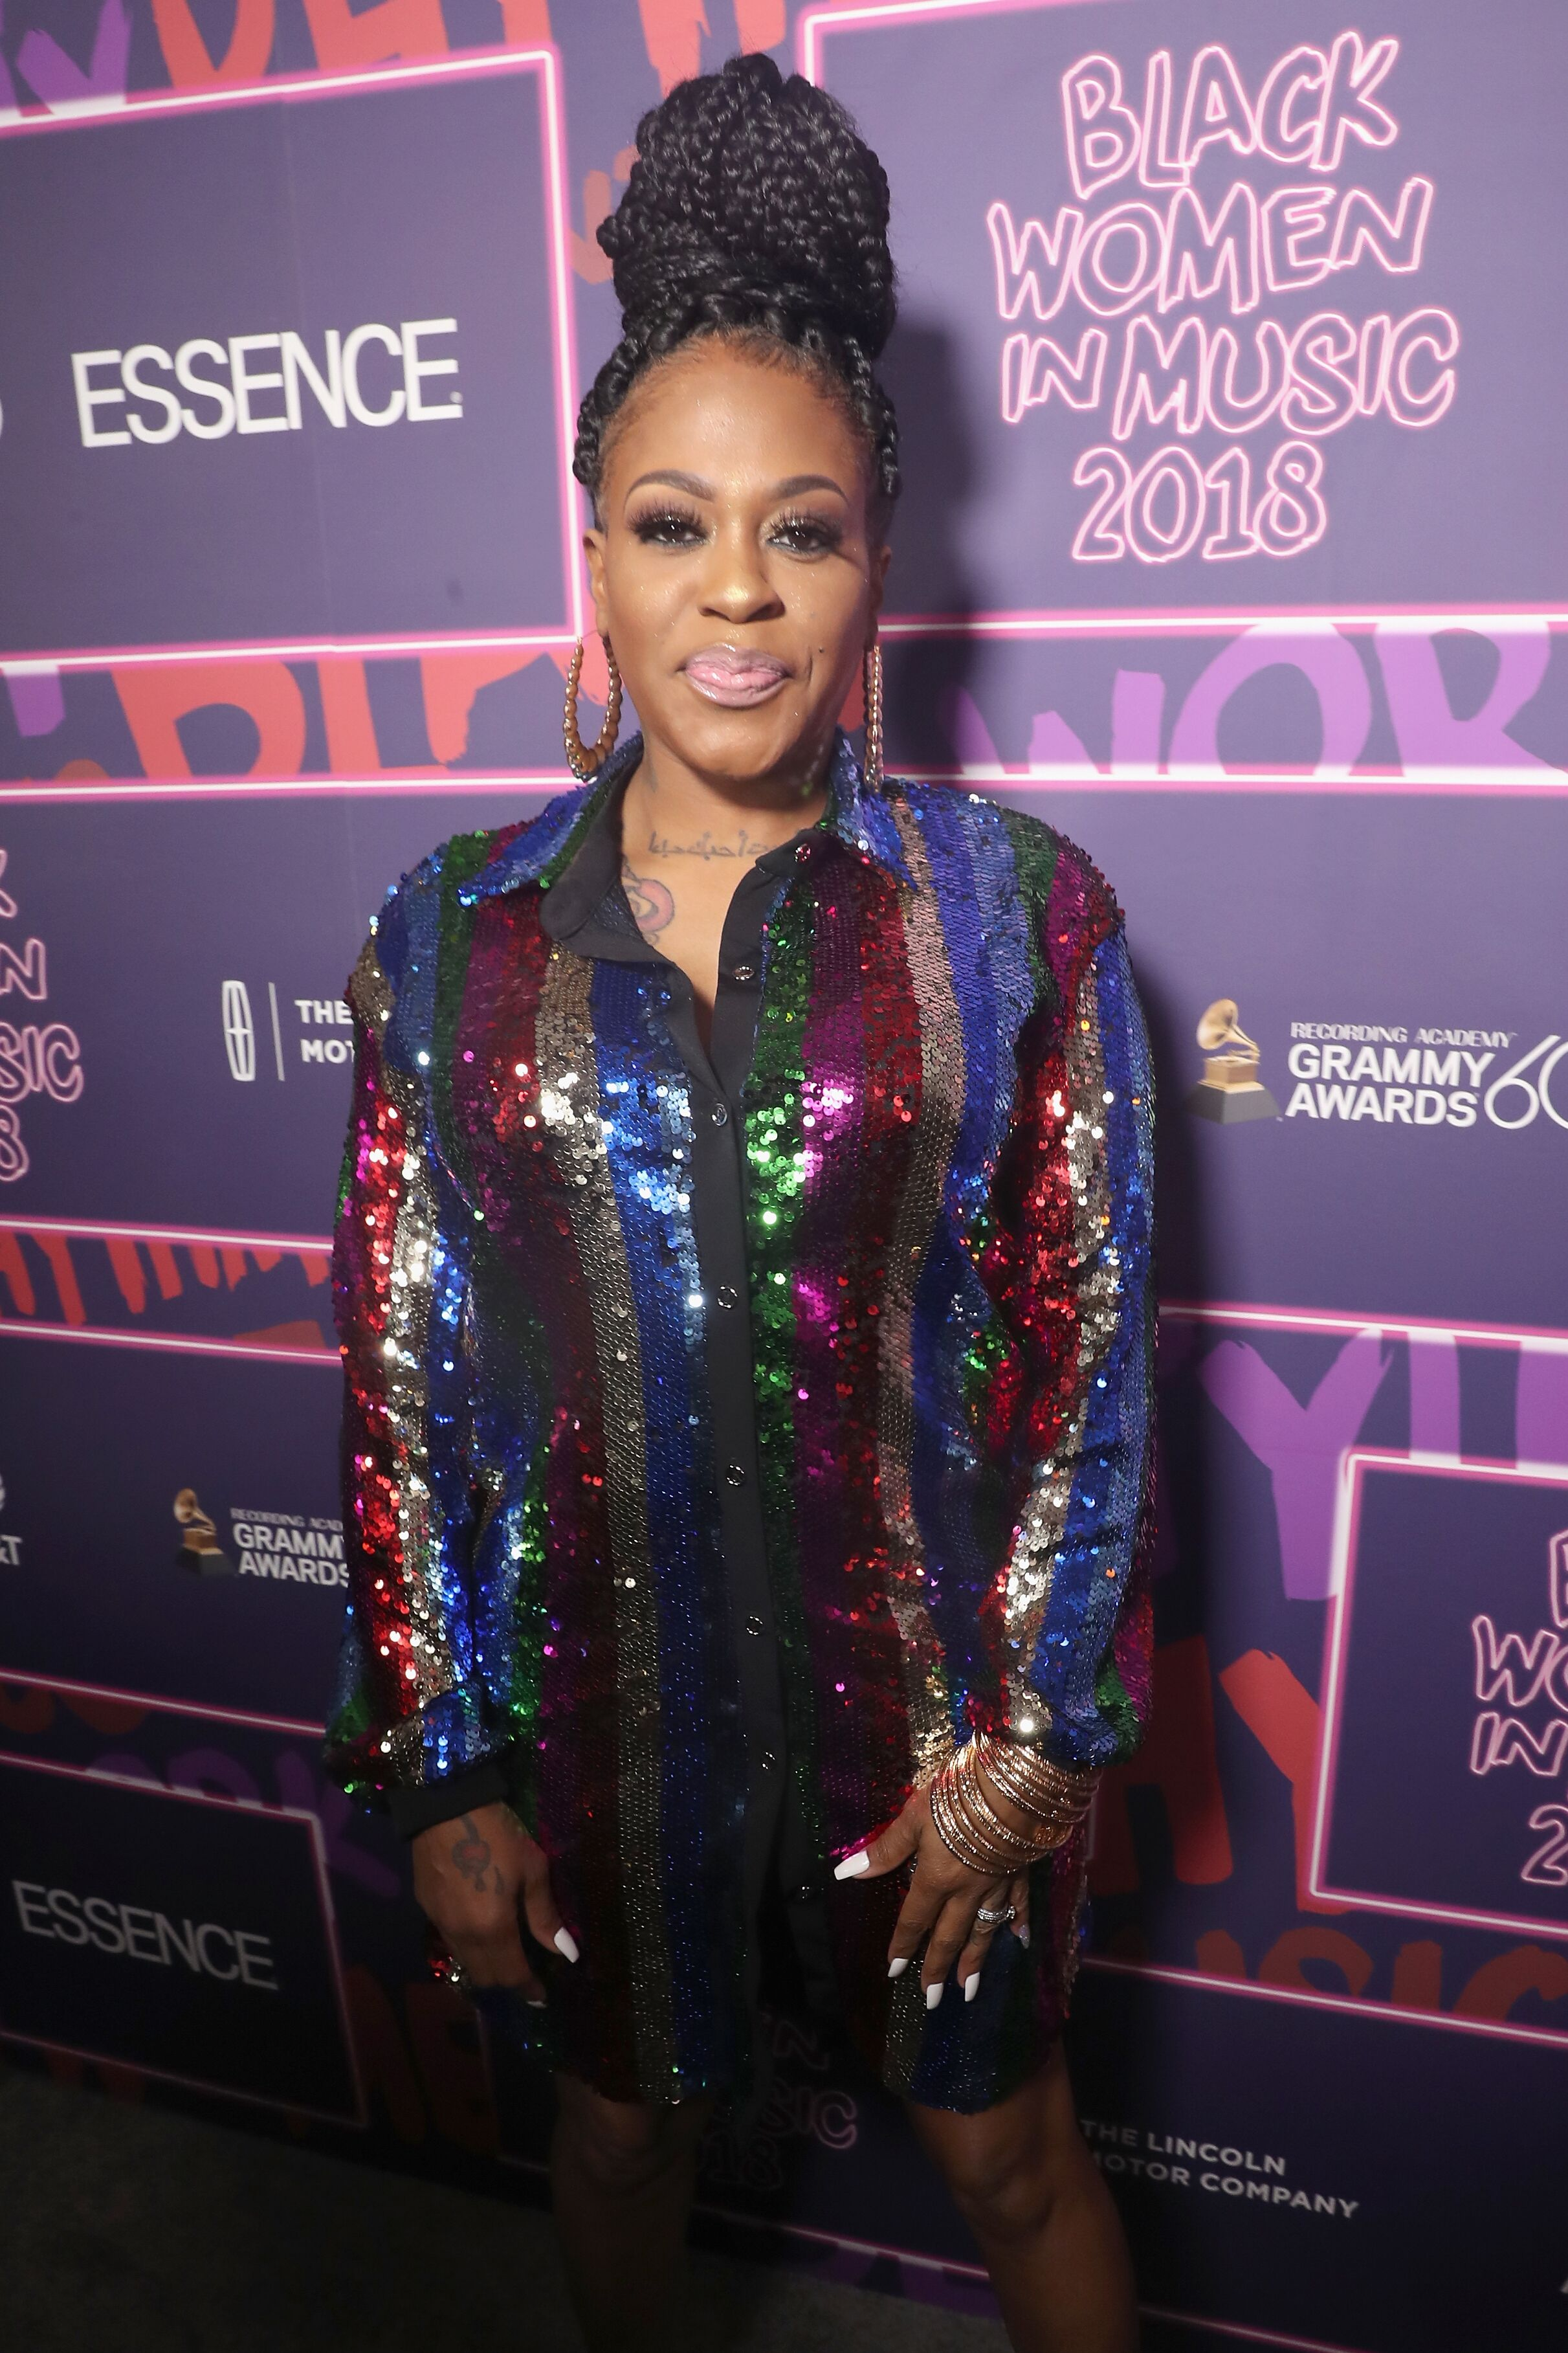 Lil Mo at the Black Women in Music 2018 event/ Source: Getty Images